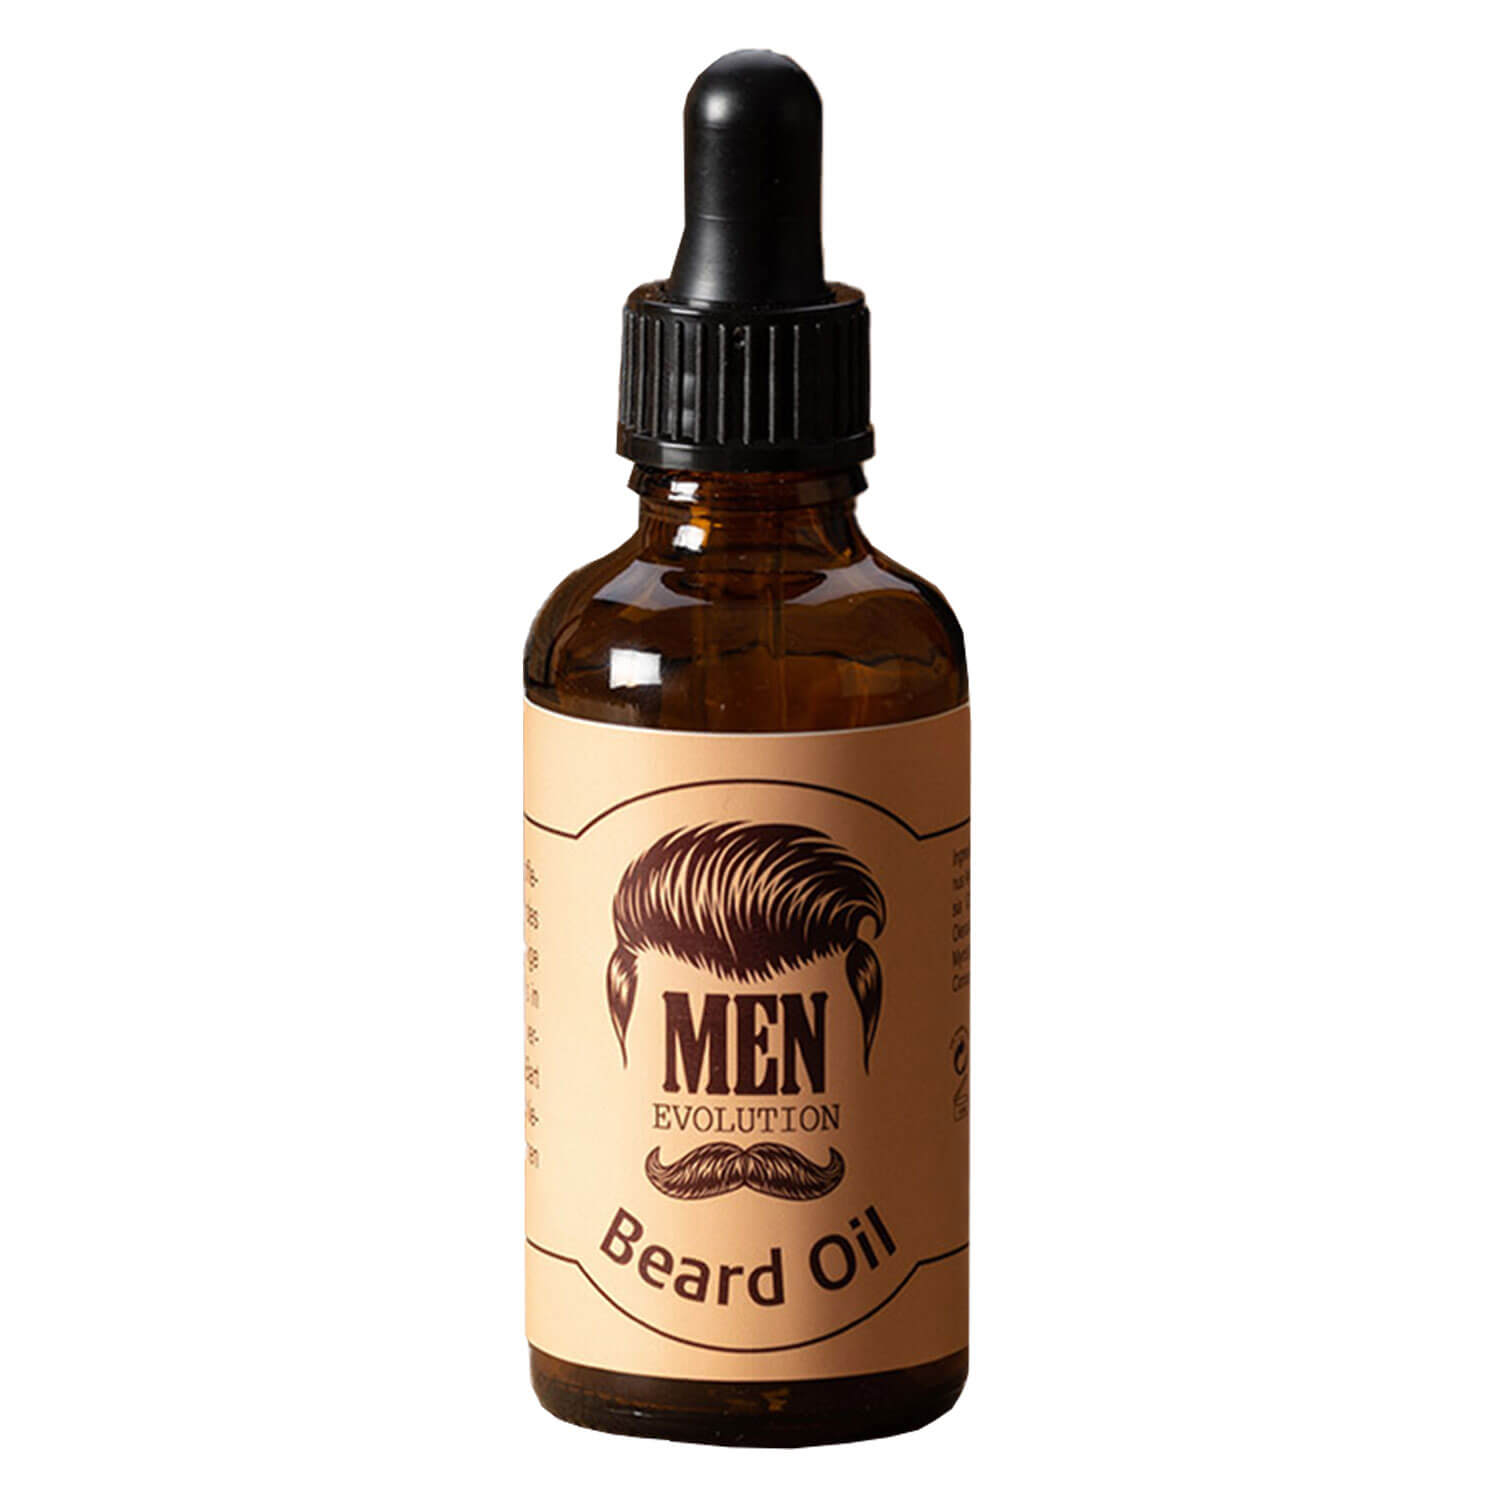 MEN Evolution - Beard Oil